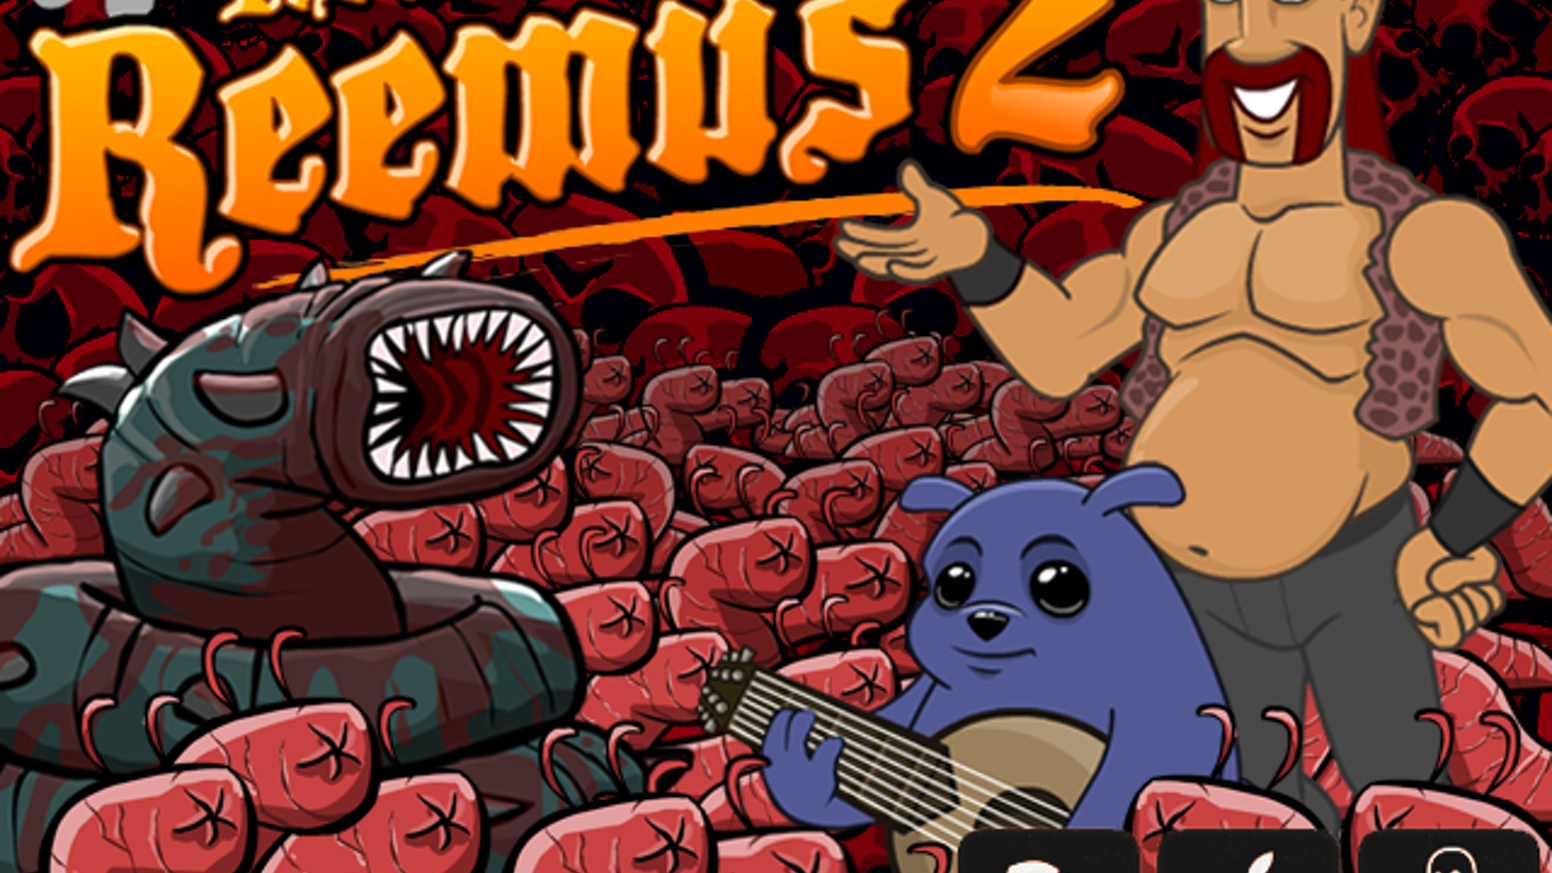 The Ballads of Reemus 2 - 2D Point and Click Adventure Game by Jay